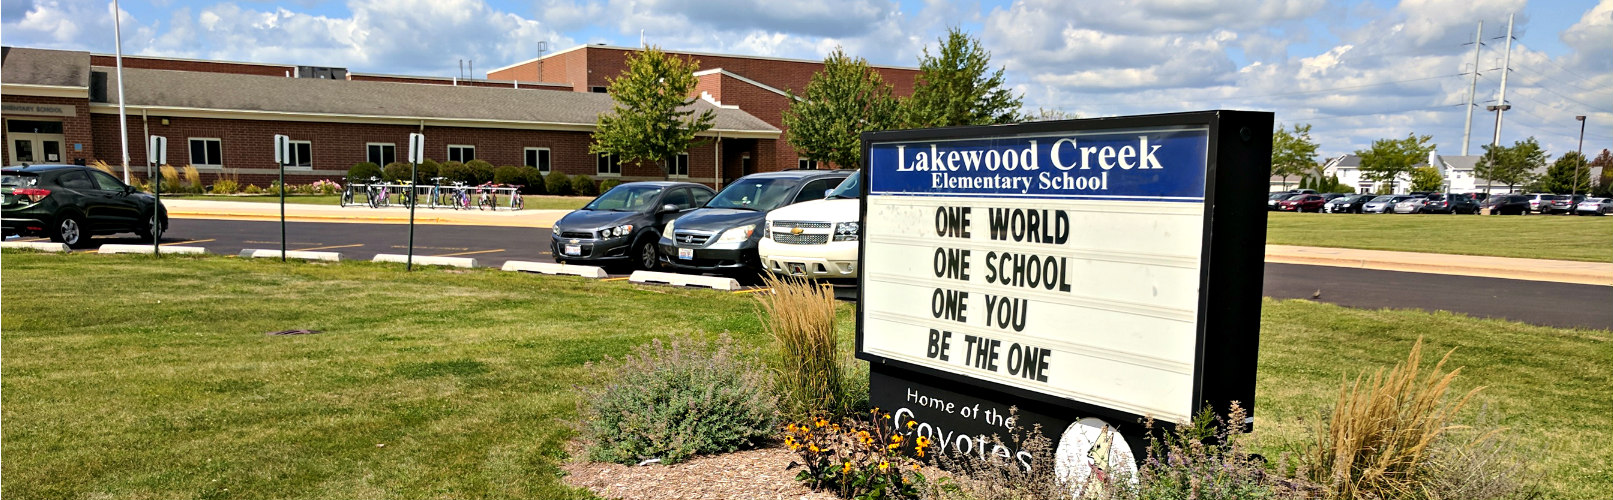 Lakewood Creek Elementary School